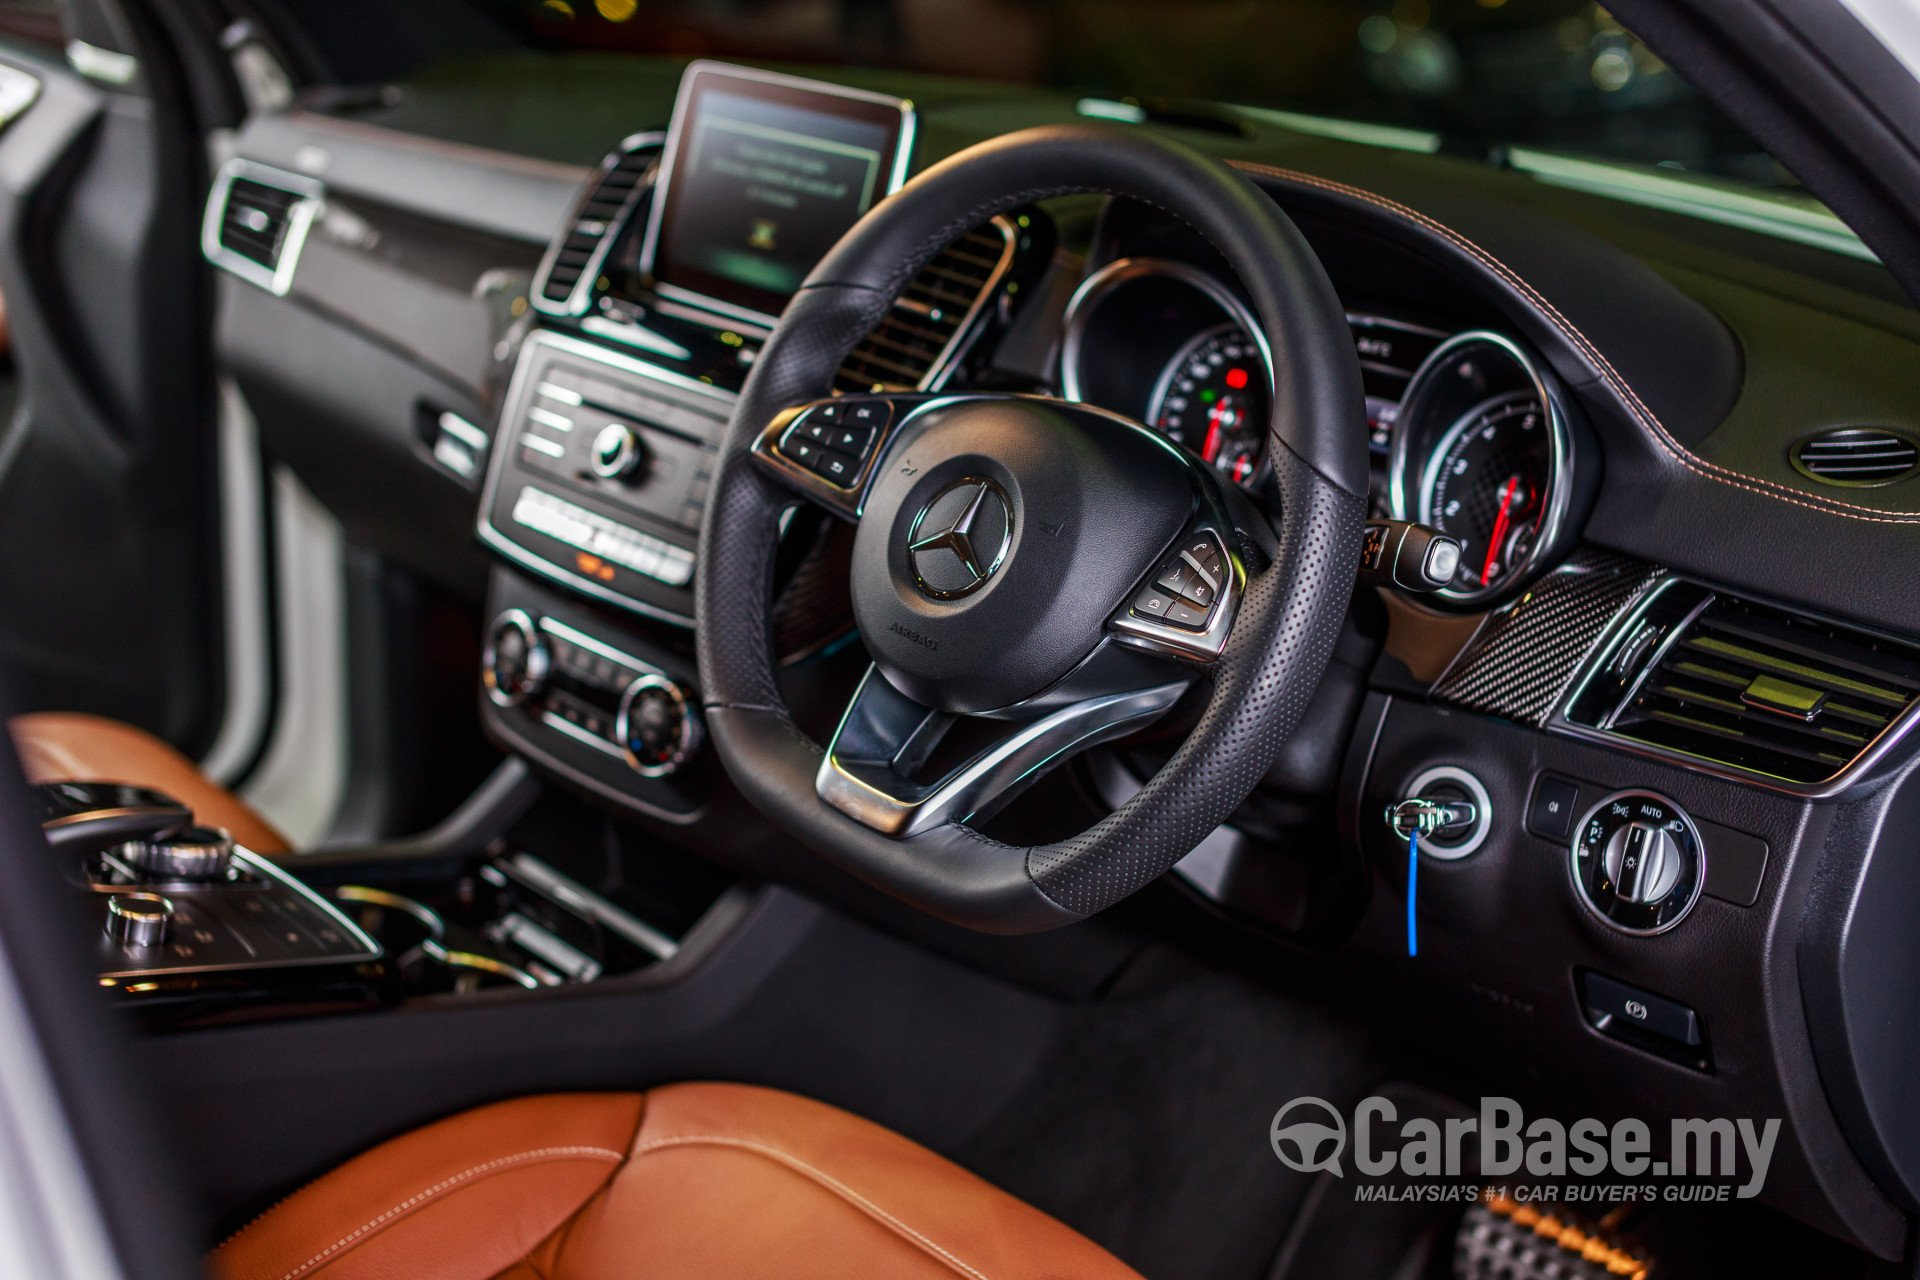 Mercedes Benz Gle Coupe C292 2016 Interior Image 26573